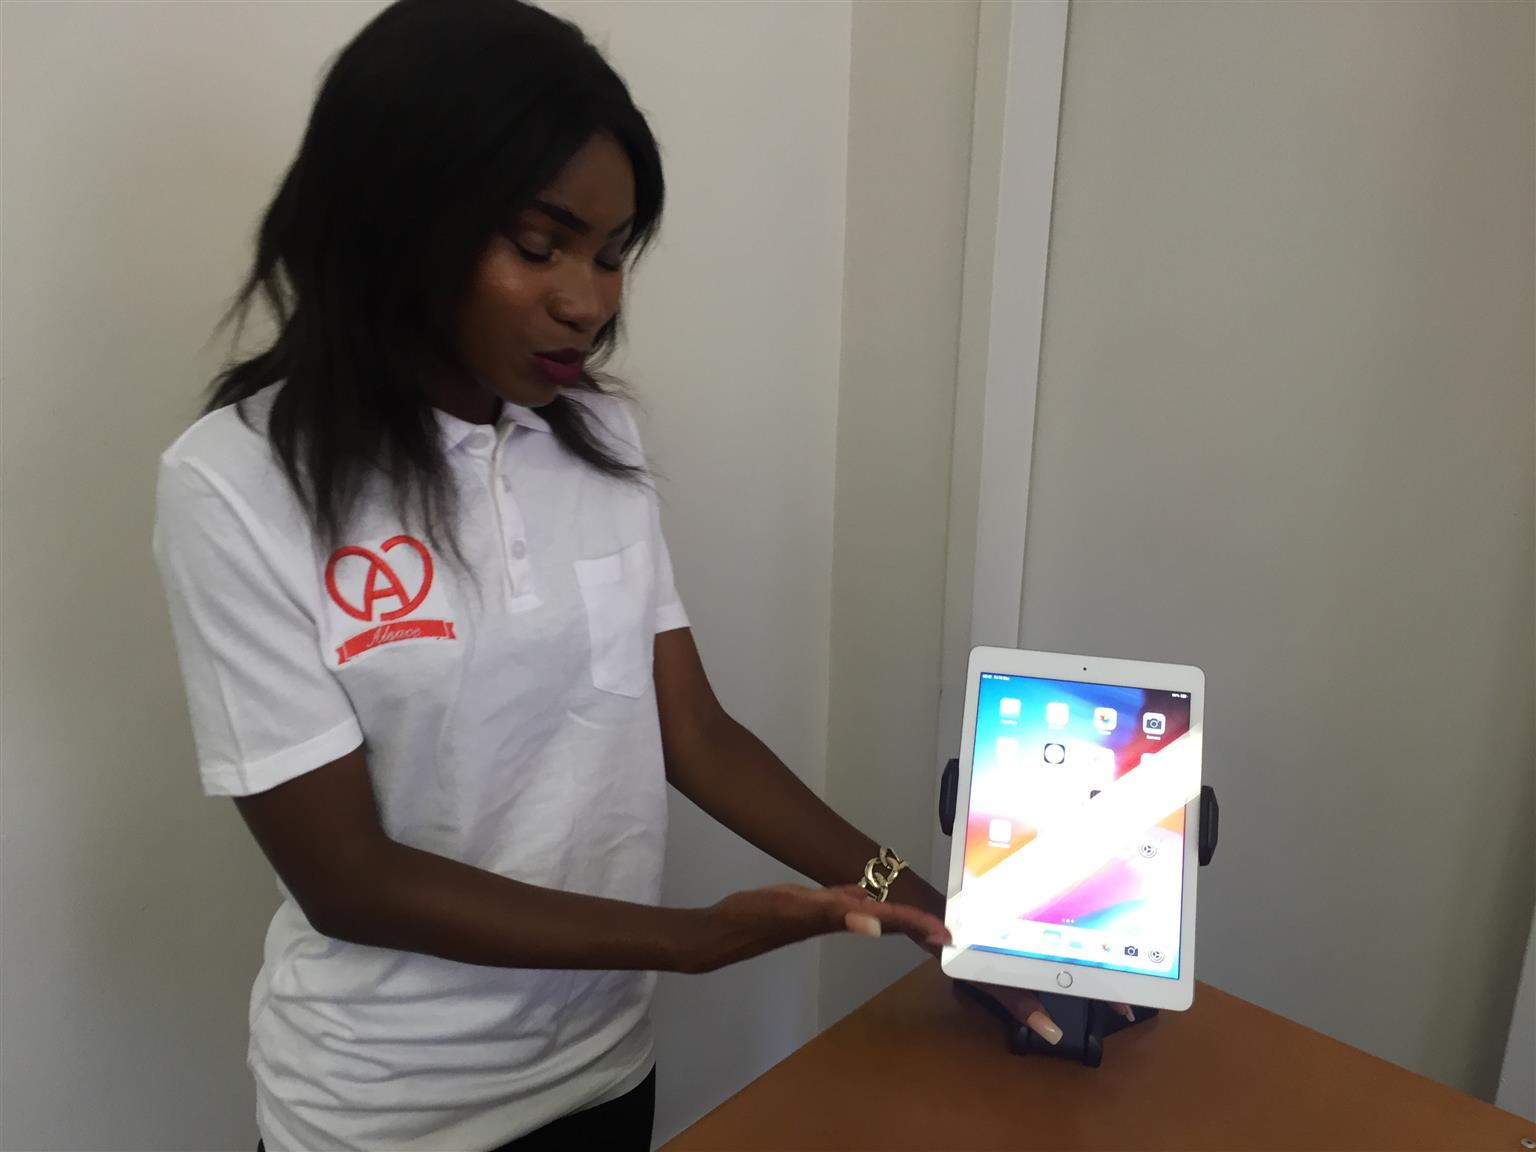 ☆ APPLE™ iPADS ☆ ALSACE'S PreOWNED UNITS ☆